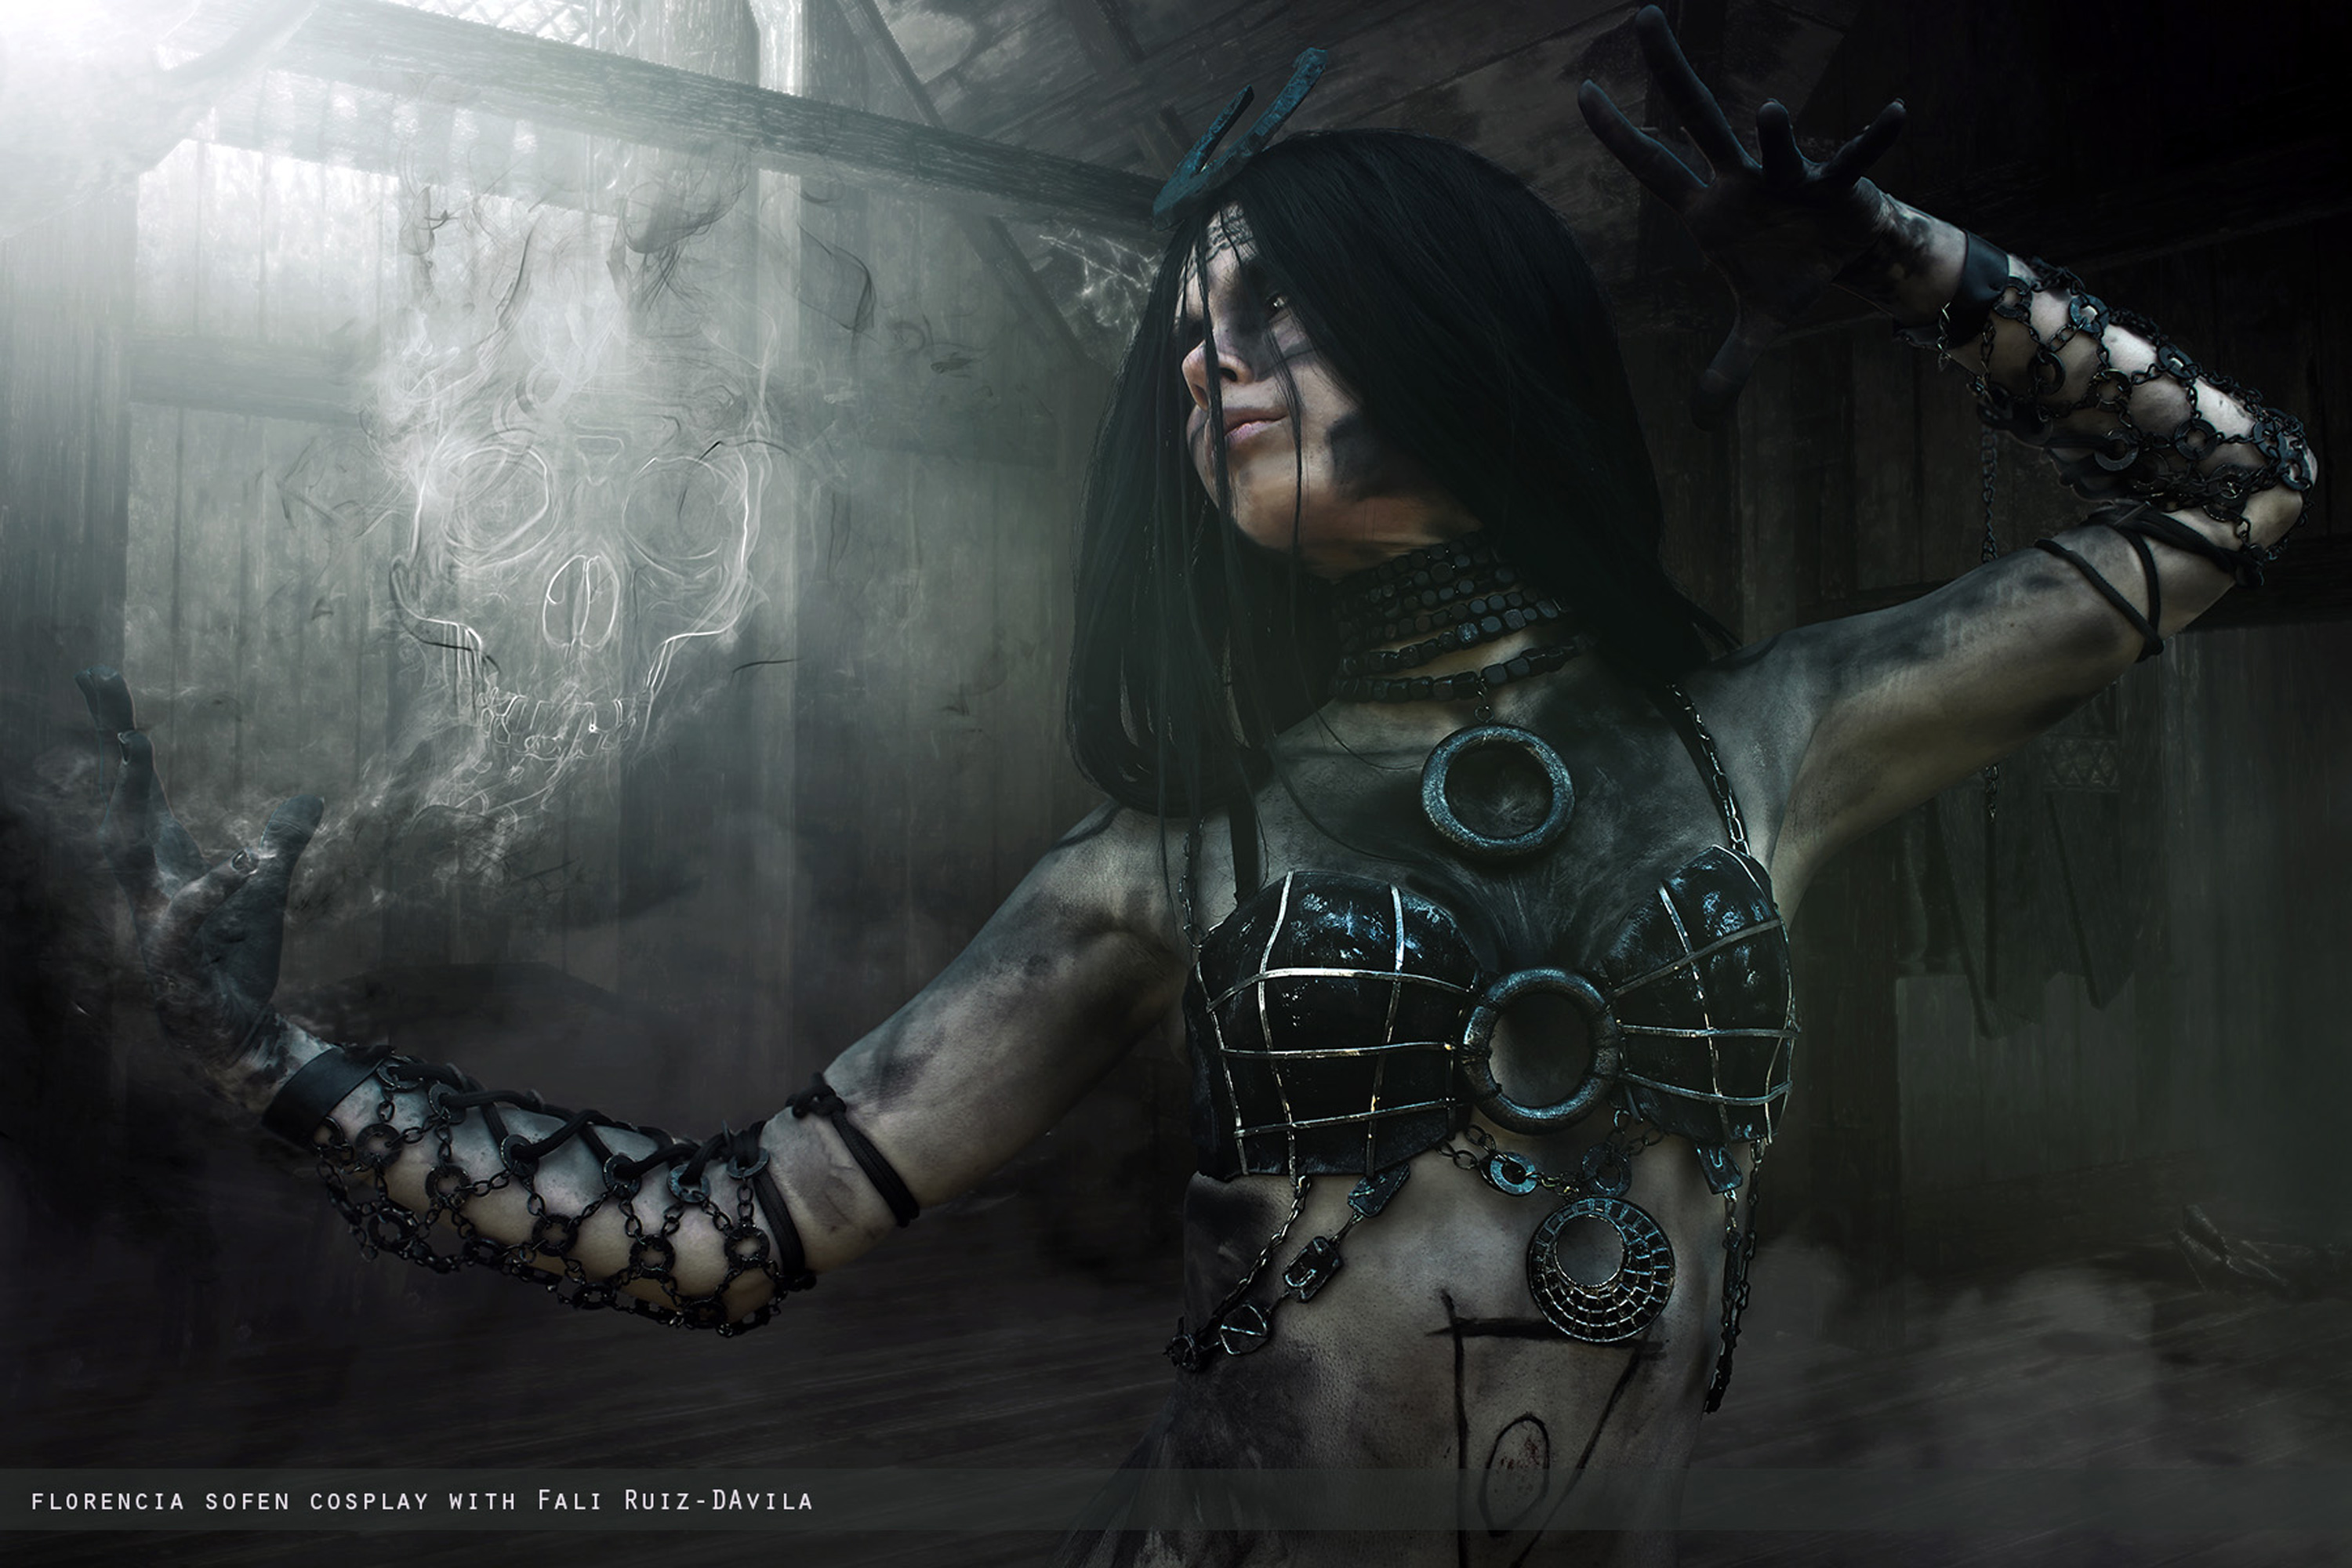 Enchantress Suicide Squad Hd Photography 4k Wallpapers